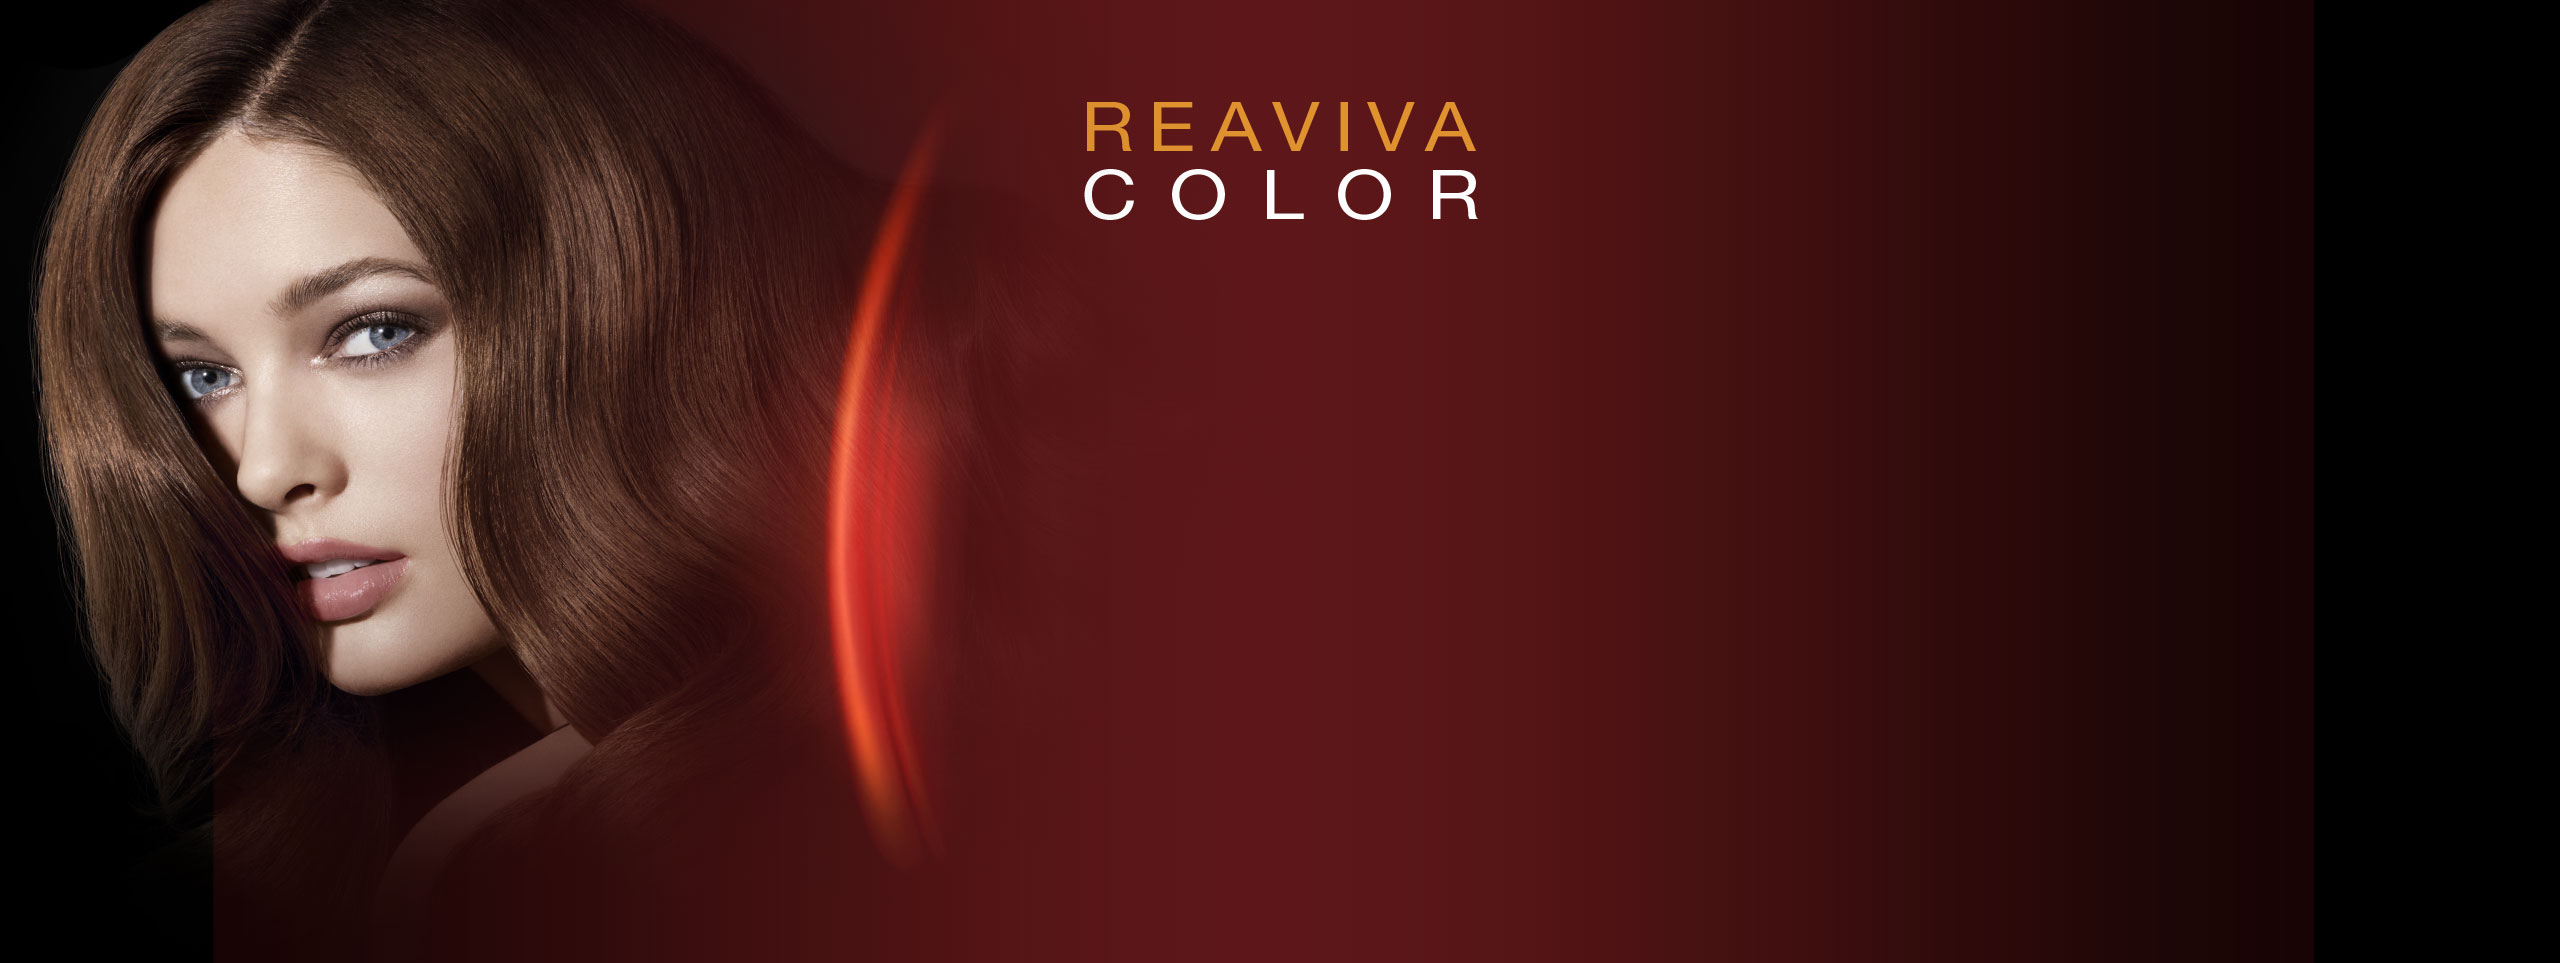 Reaviva-color_2560x963